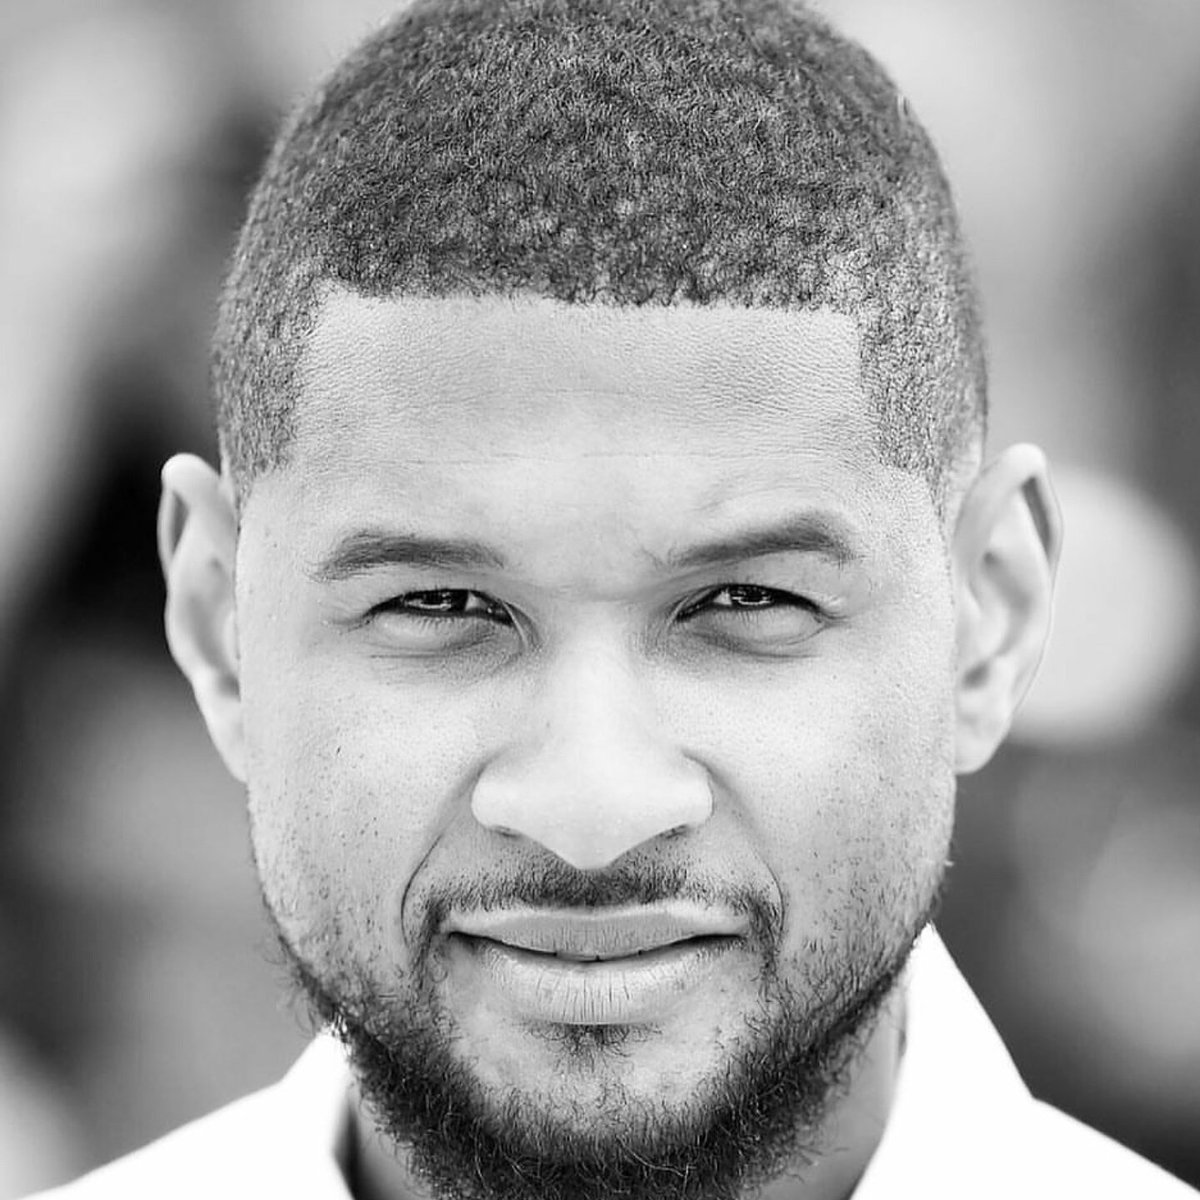 Congrats to my bro @usher on getting a star on the Hollywood  #WalkOfFame Well deserved G. https://t.co/vmxCeAoG9r